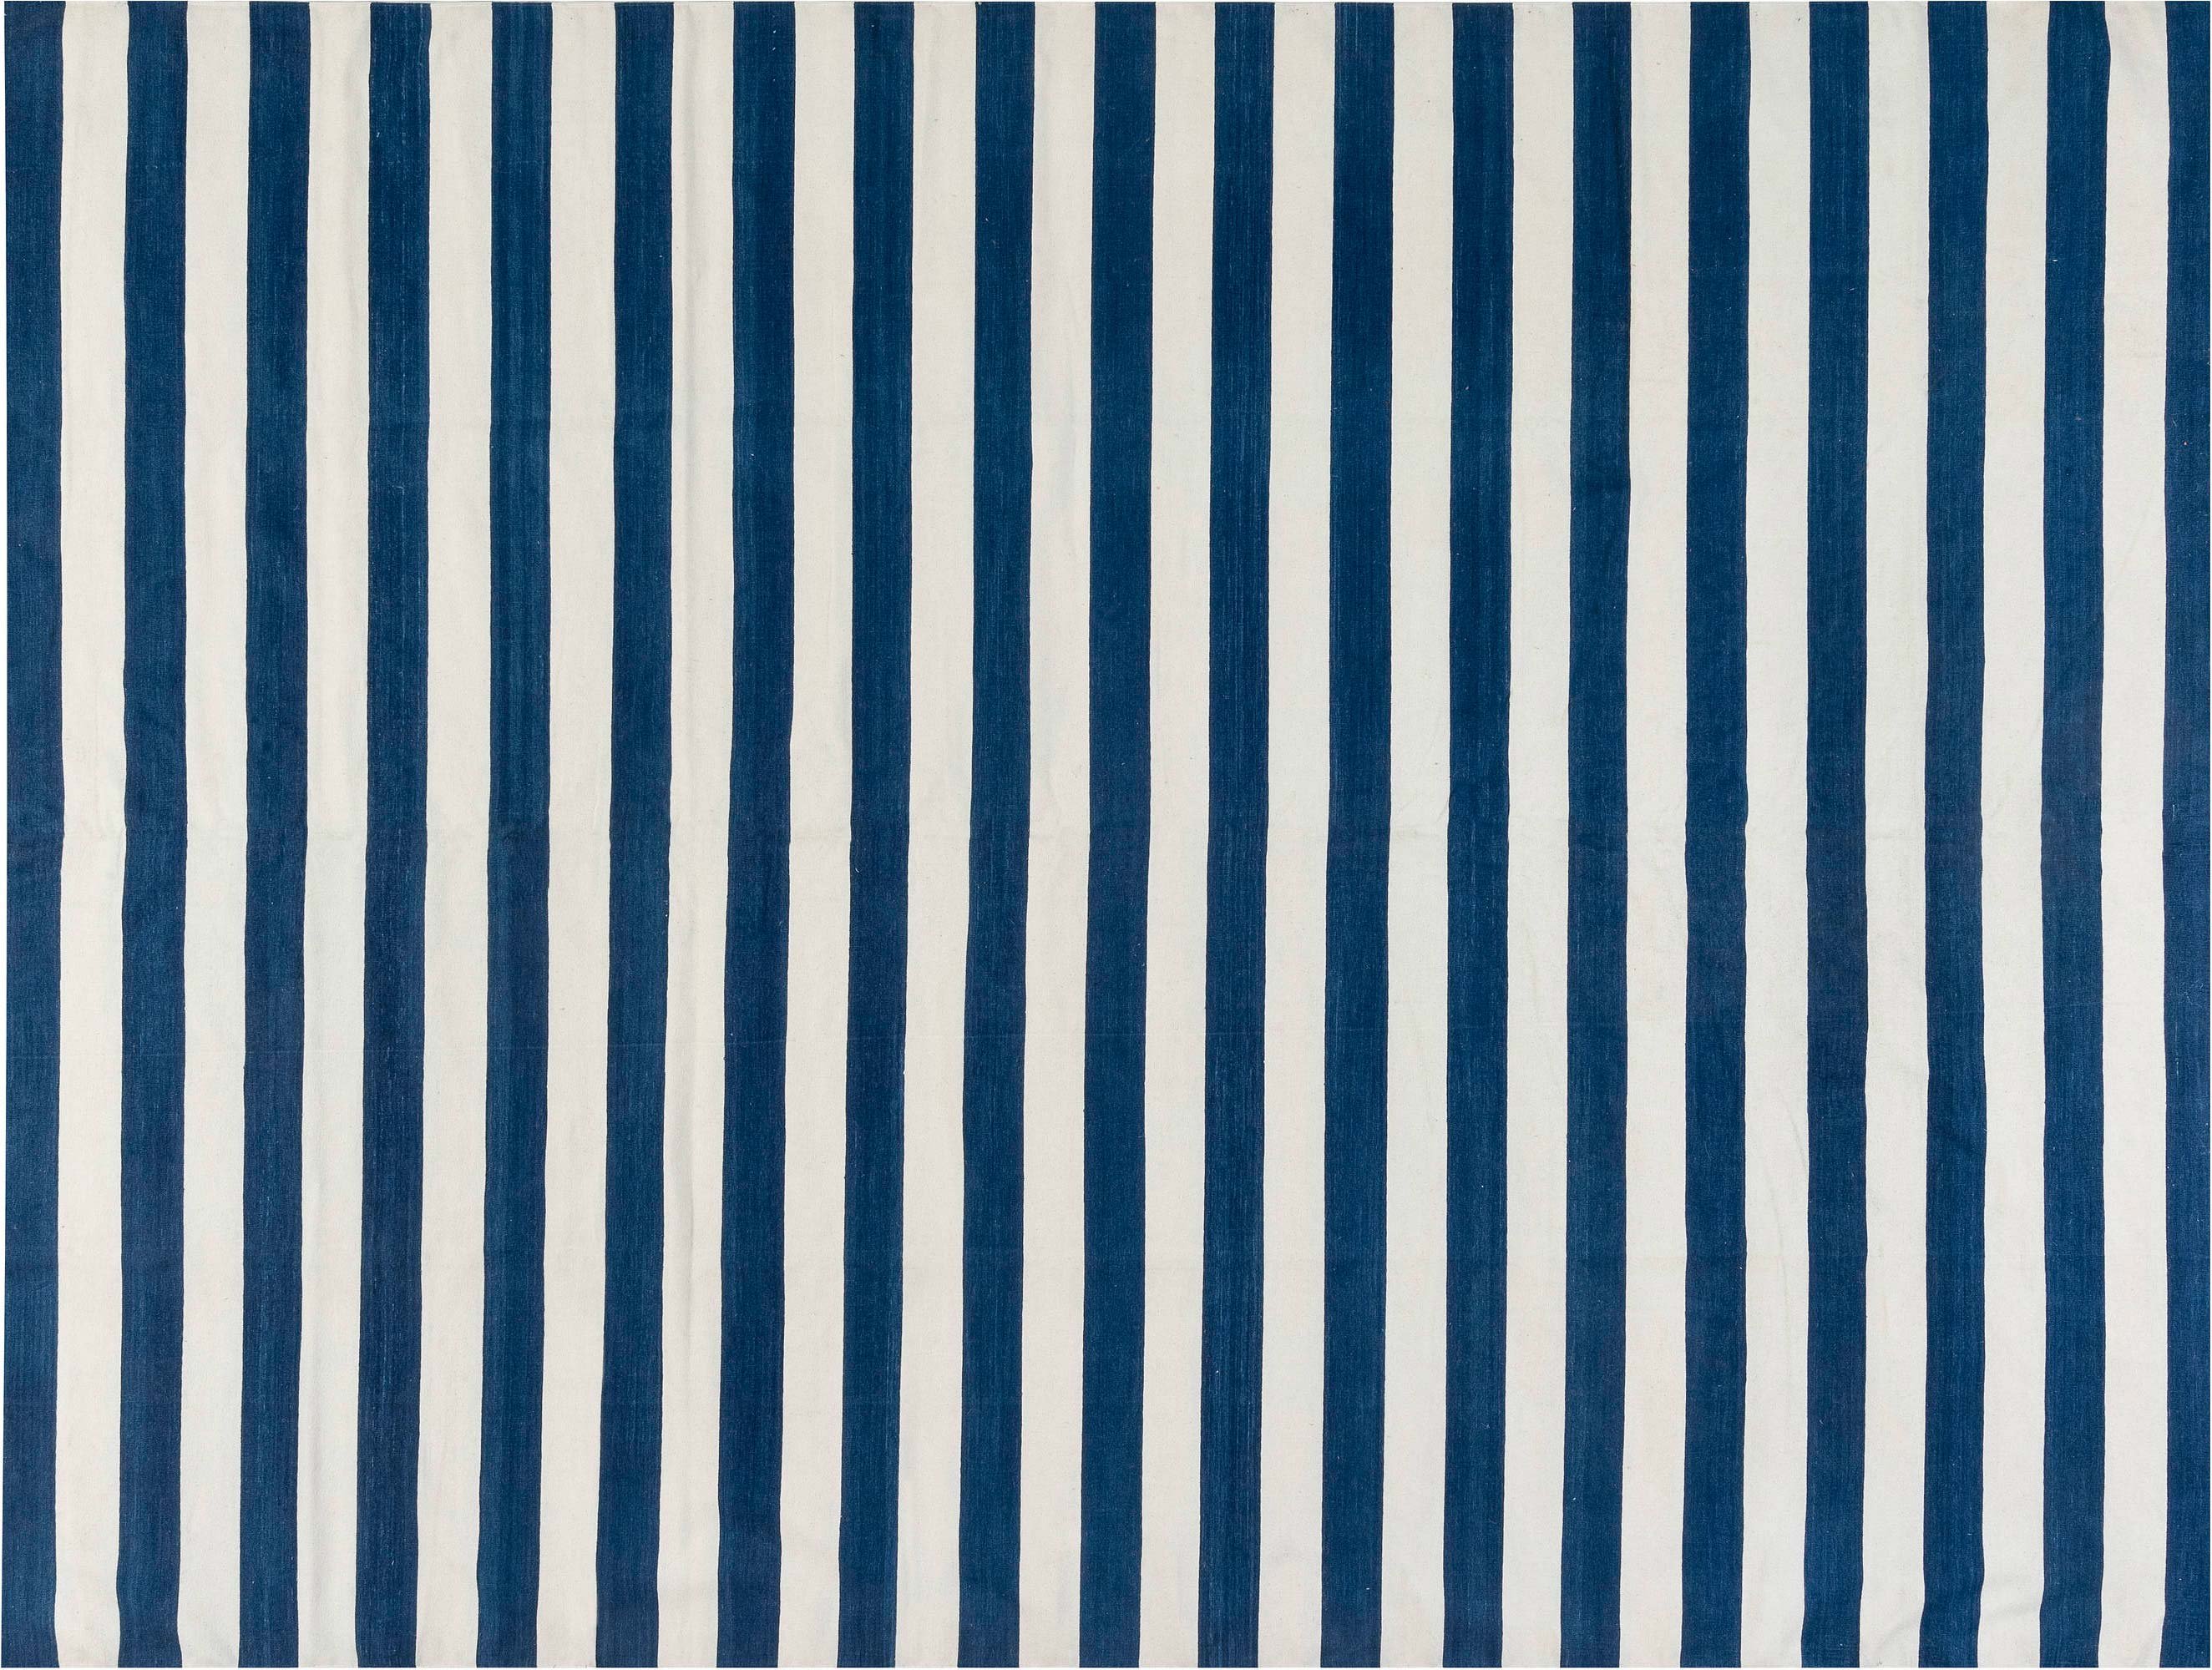 Picture of: Contemporary Blue And White Striped Dhurrie Design Rug N11941 By Dlb